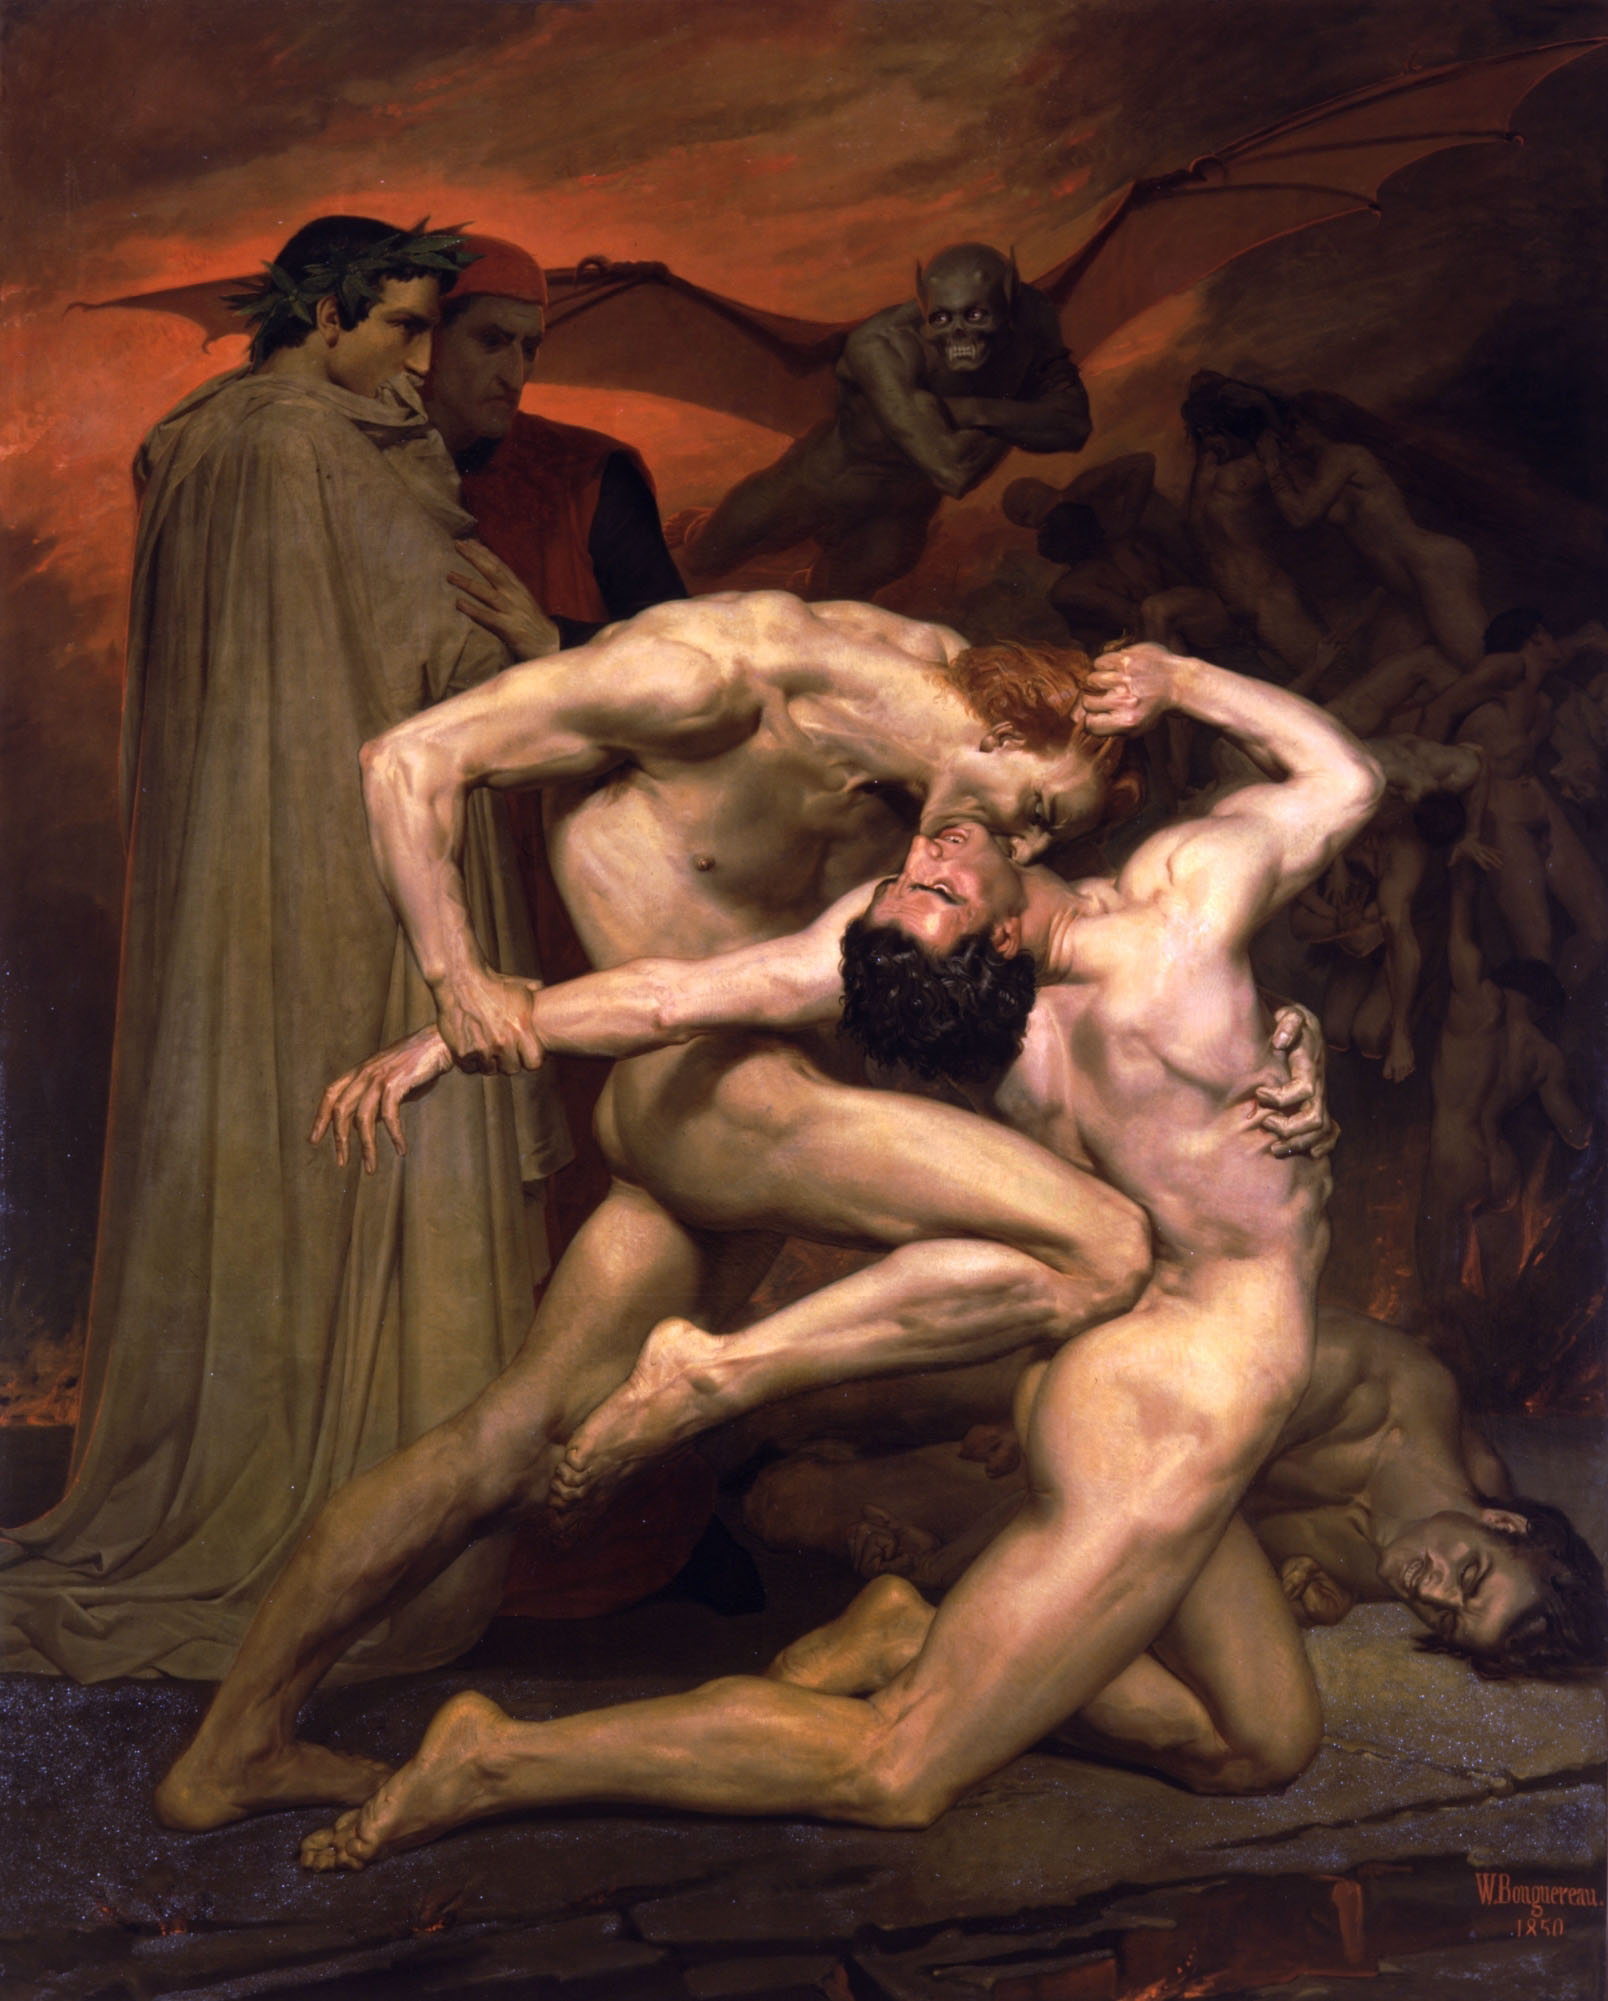 https://i0.wp.com/upload.wikimedia.org/wikipedia/commons/7/70/William-Adolphe_Bouguereau_%281825-1905%29_-_Dante_And_Virgil_In_Hell_%281850%29.jpg